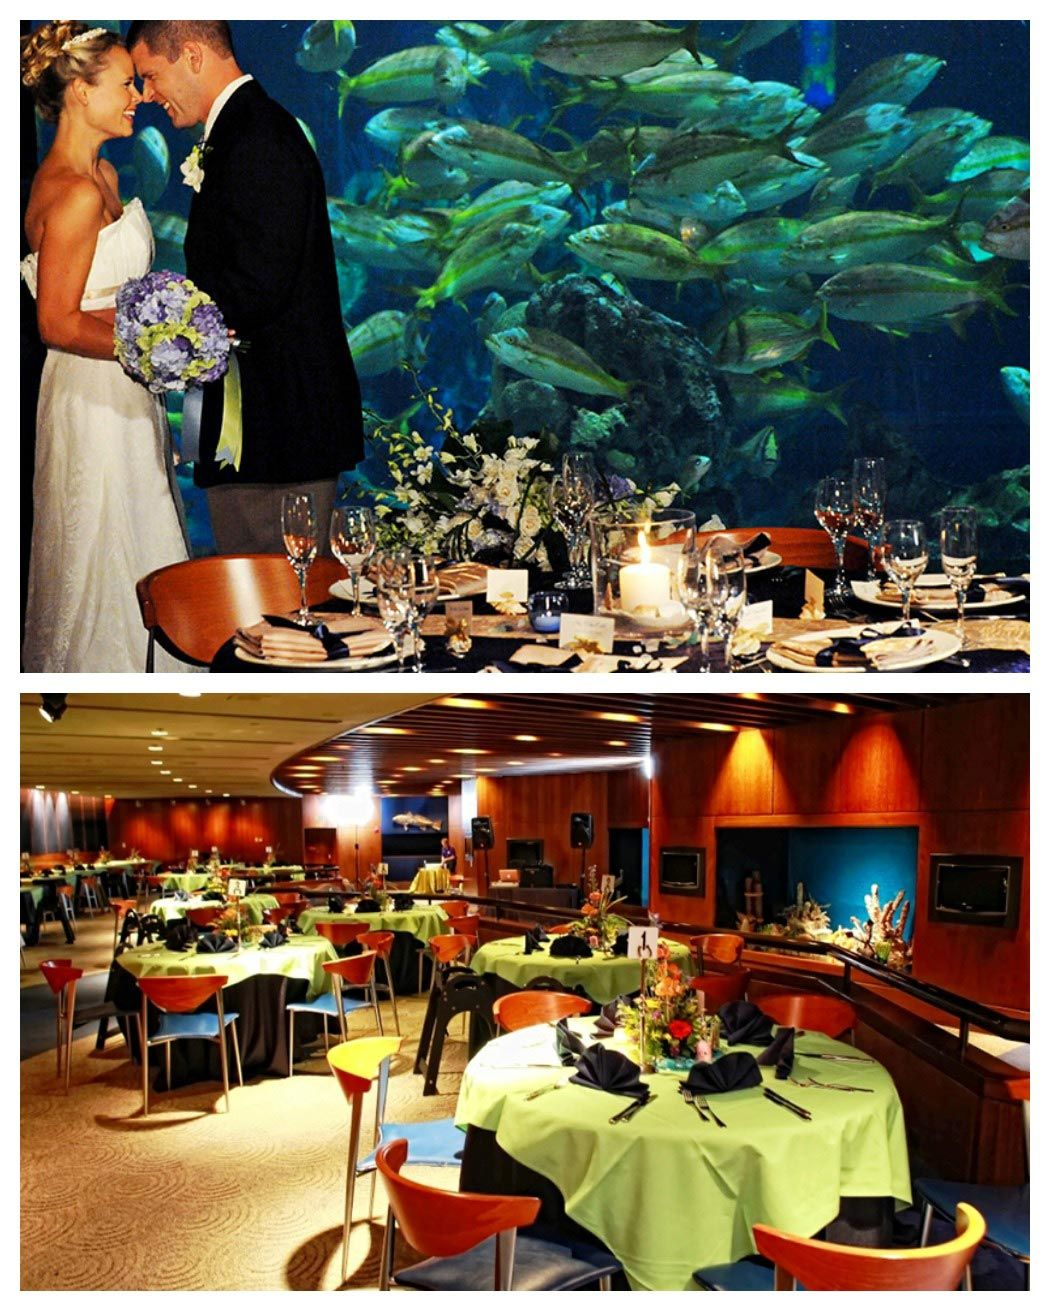 Looking For Way To Have An Adult Disney Wedding Check Out The Living Seas Salon